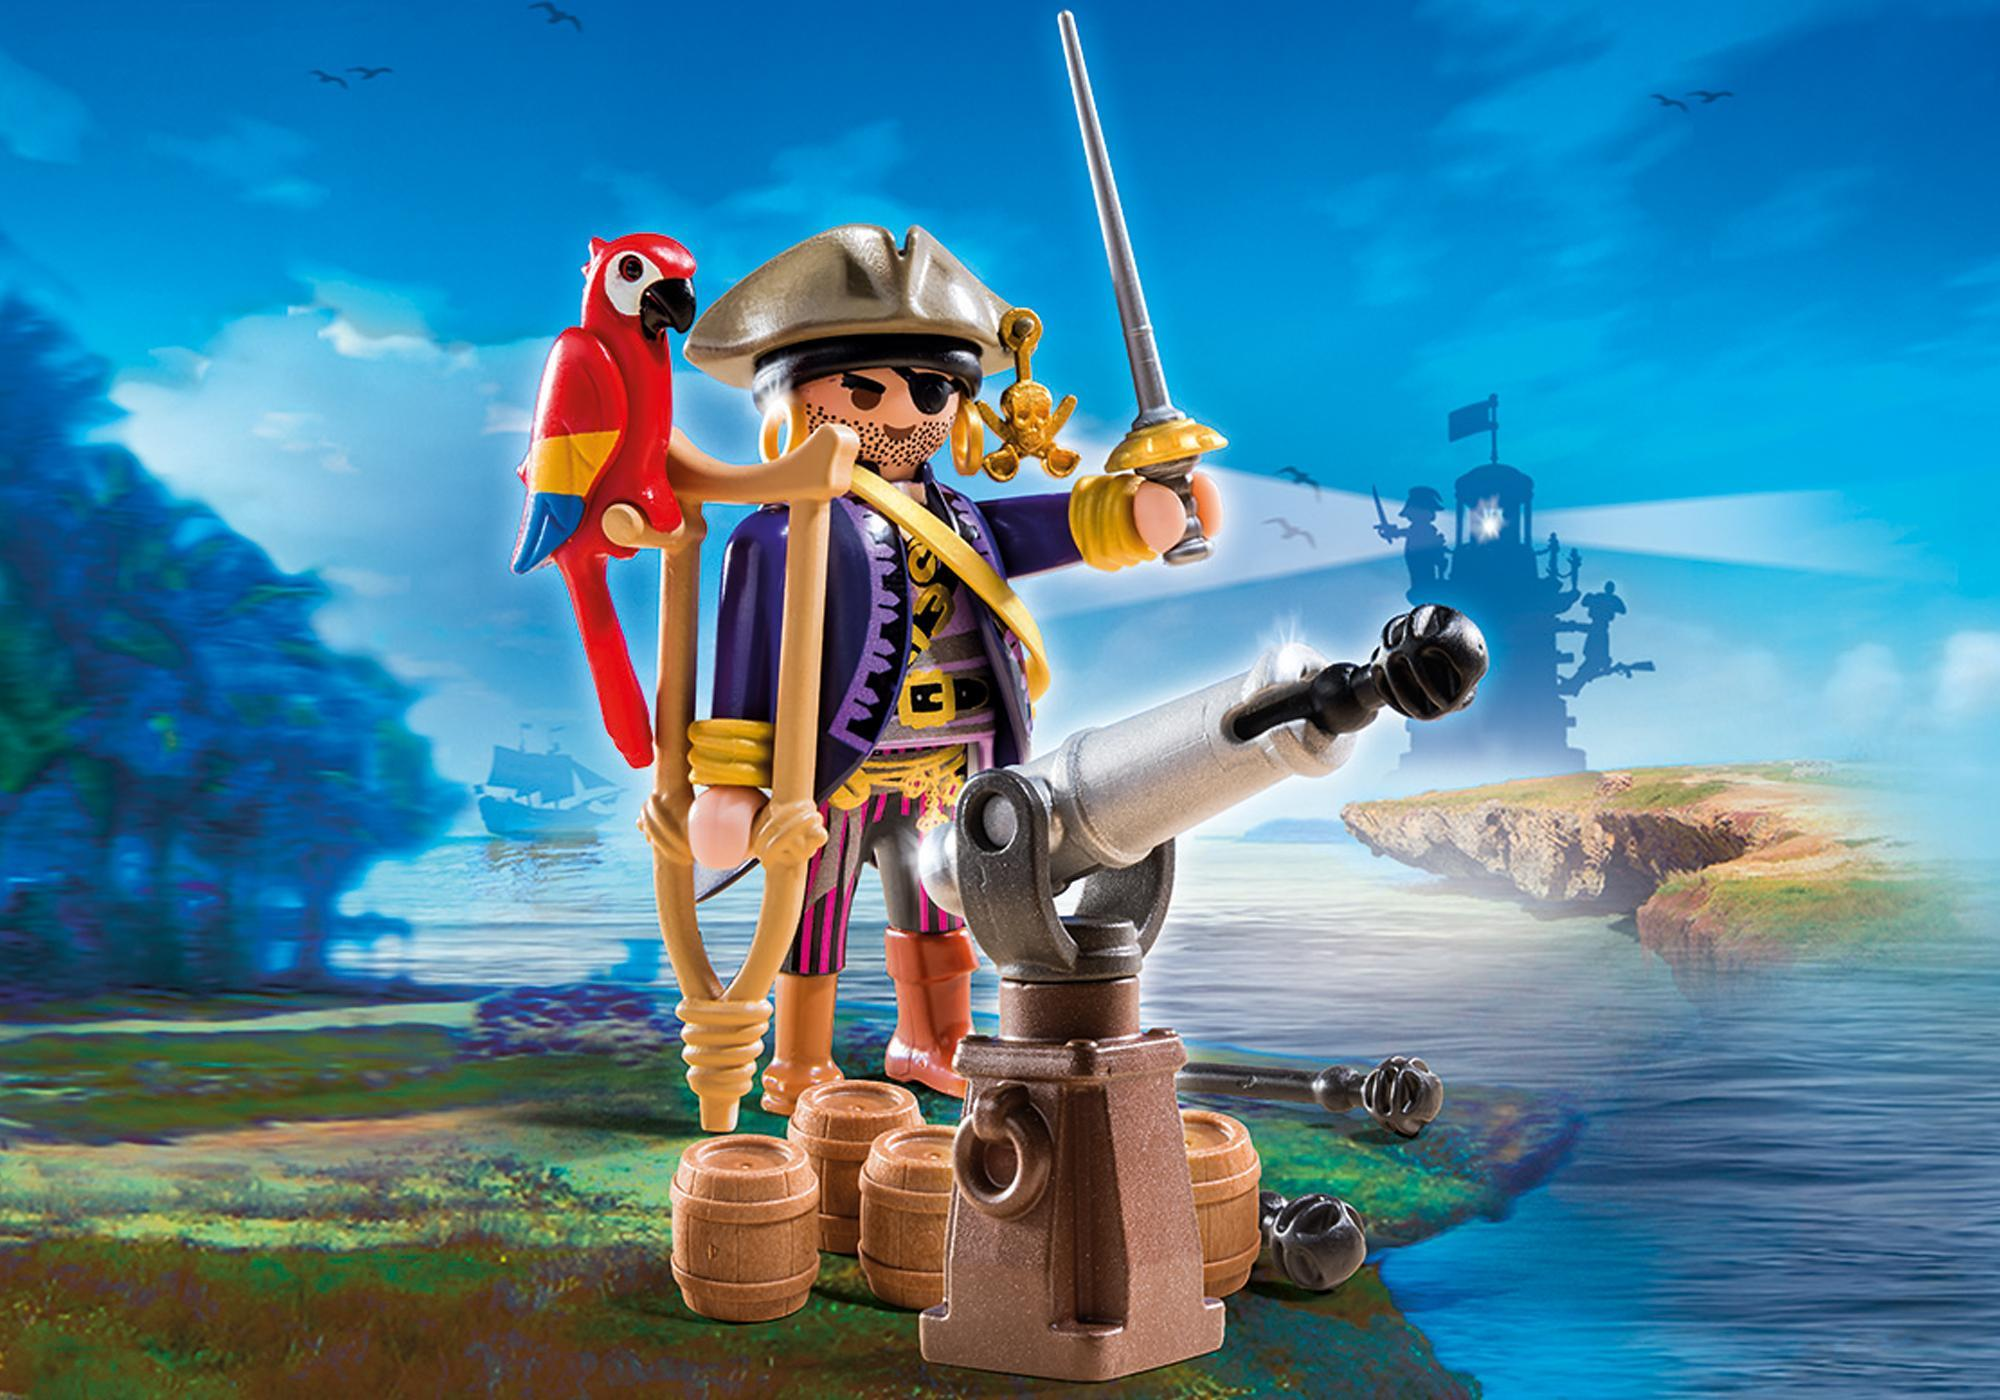 http://media.playmobil.com/i/playmobil/6684_product_detail/Capitaine pirate avec canon